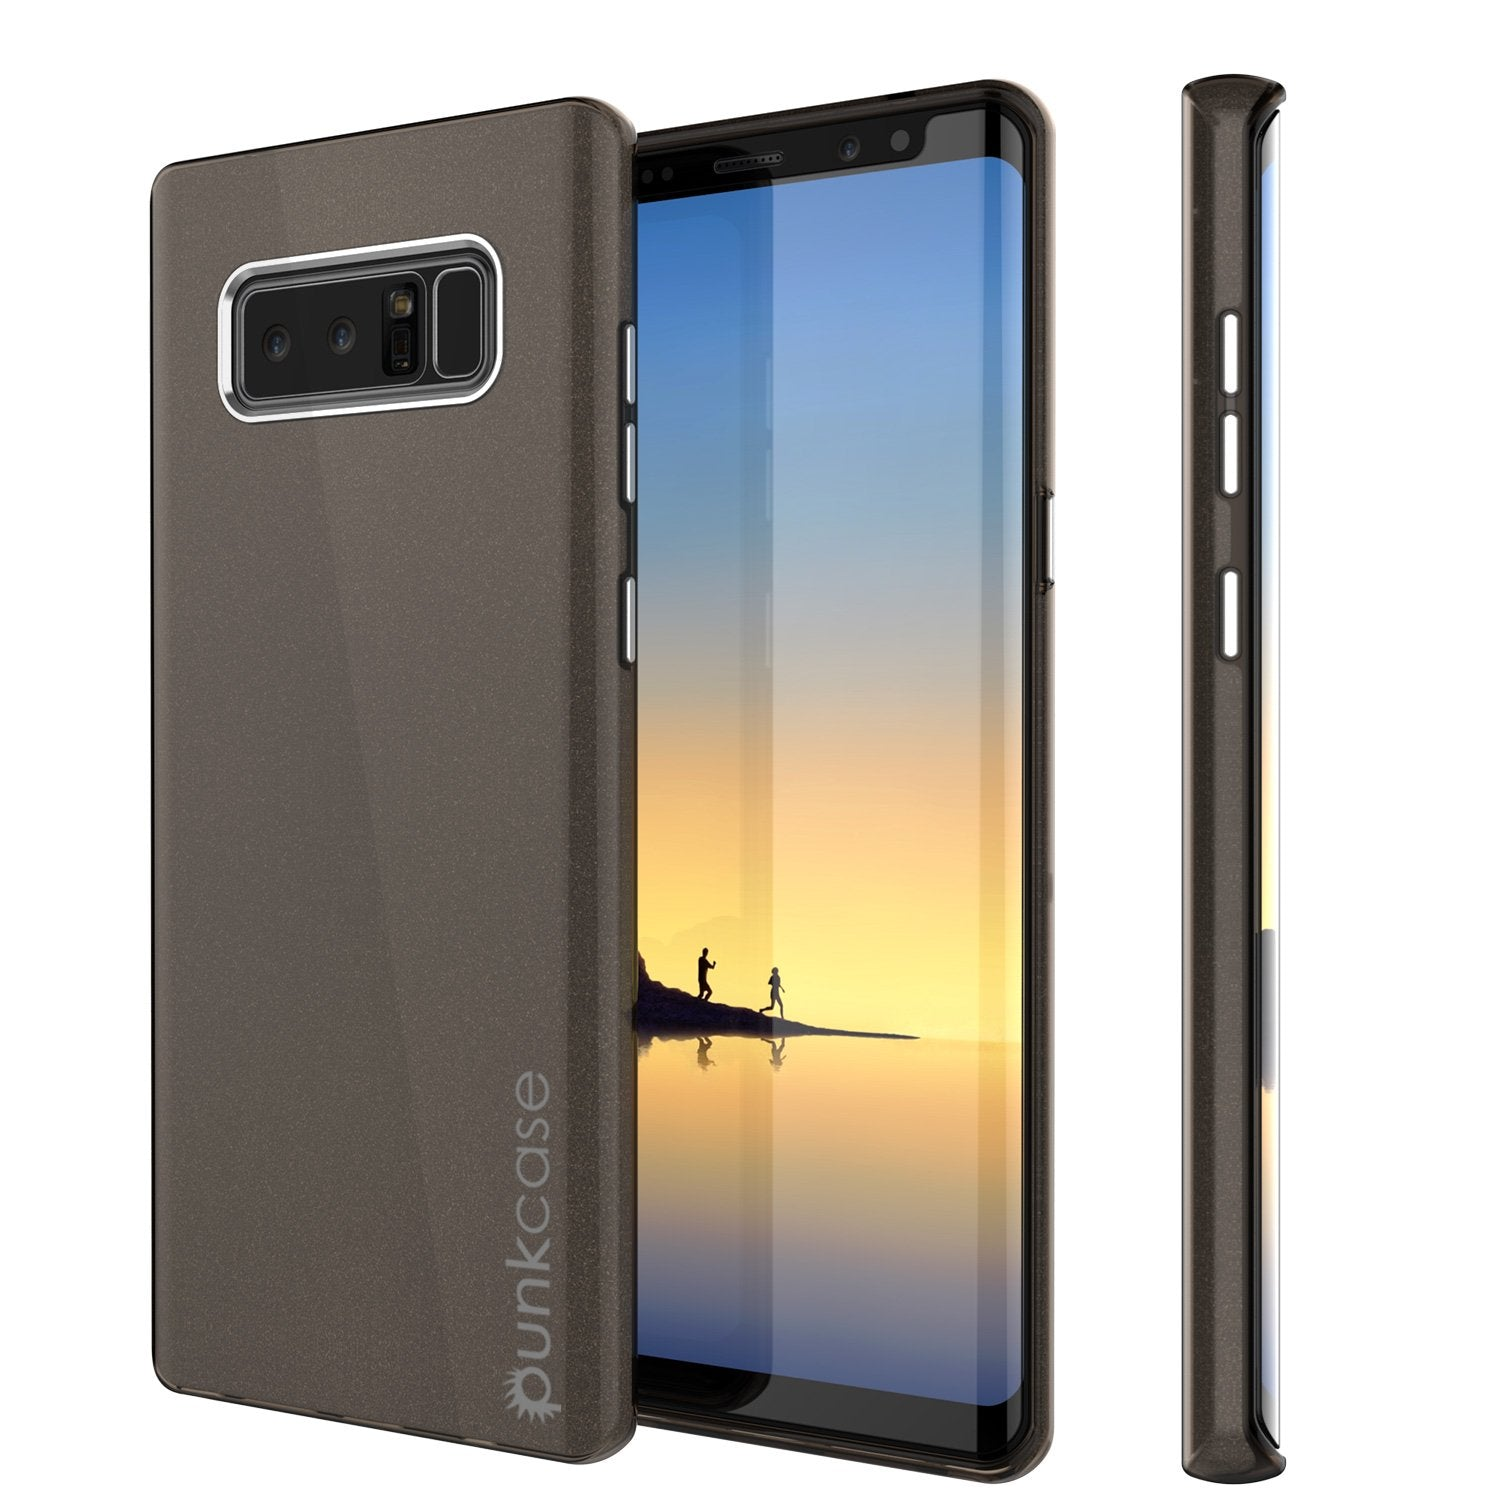 Galaxy Note 8 Case, Punkcase Galactic 2.0 Series Ultra Slim Protective Armor [Black/grey]